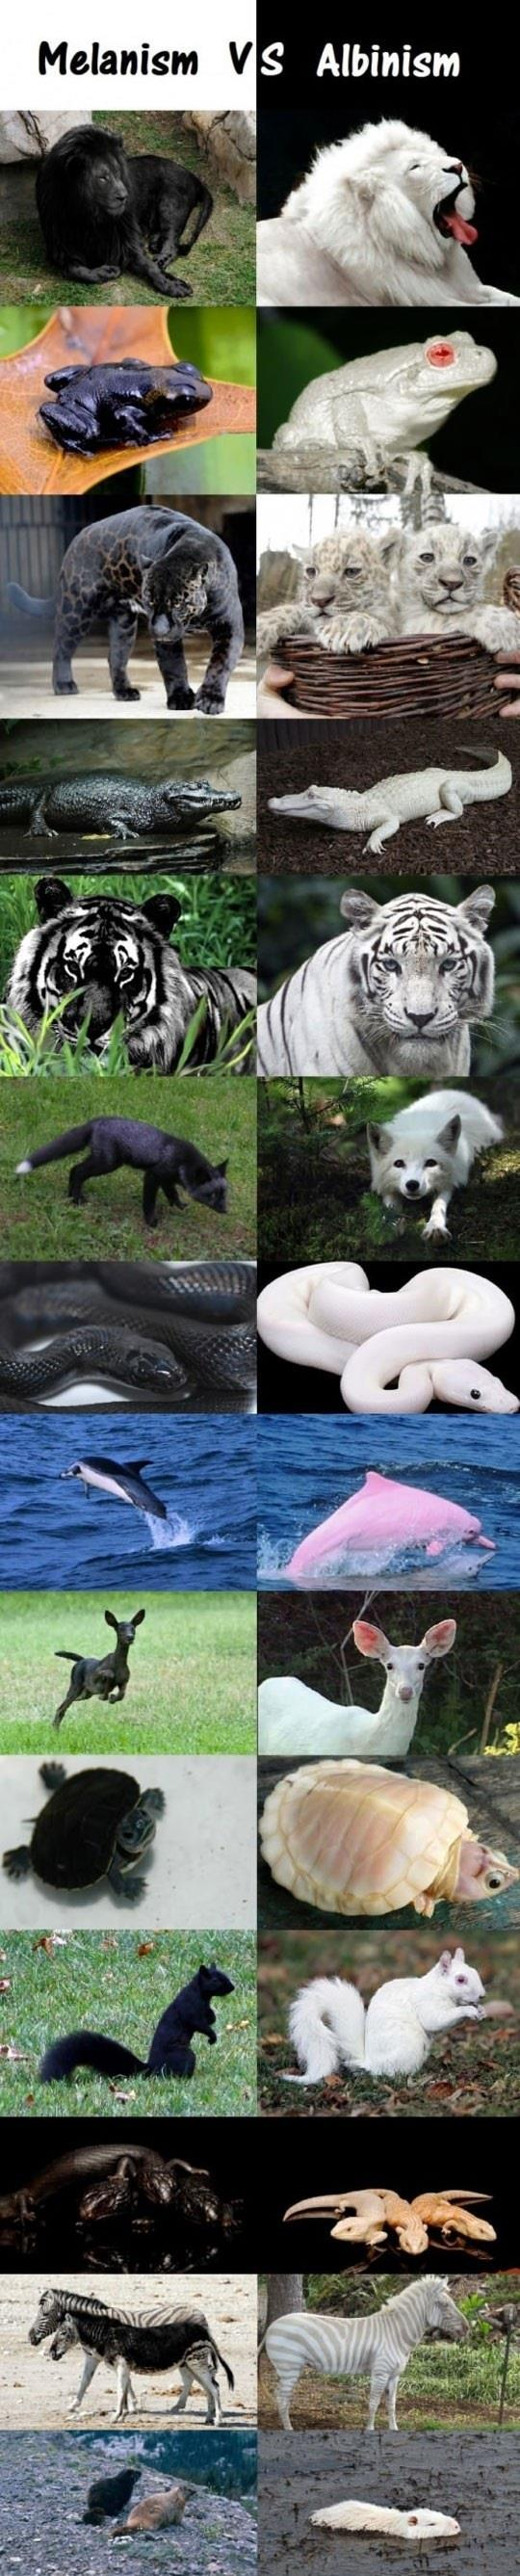 Melanism Vs. Albinism In The Animal Kingdom